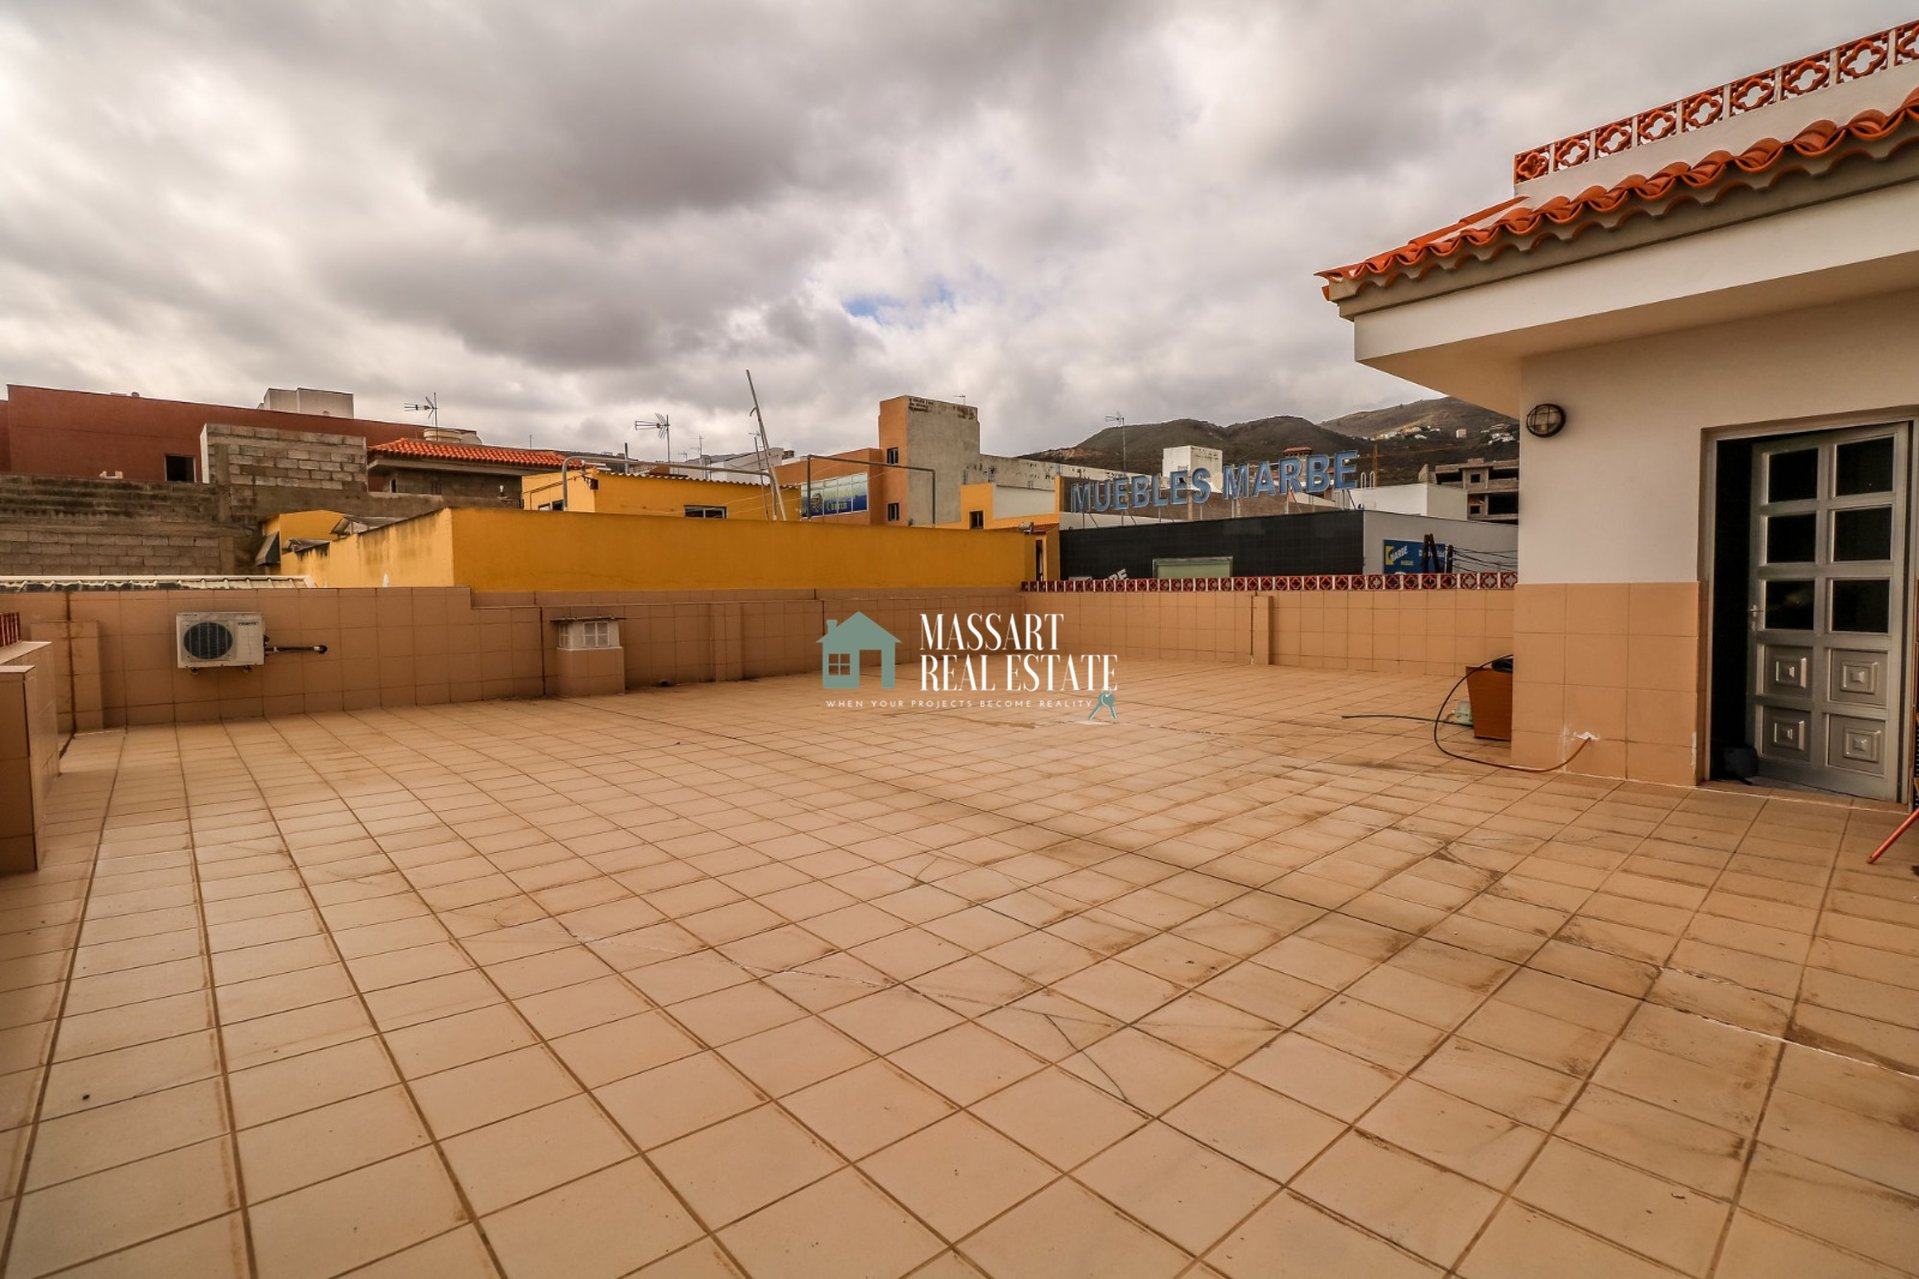 GREAT SALE OPPORTUNITY: SINGLE FAMILY HOUSE + LOCAL + GARAGE - Valle de San Lorenzo!